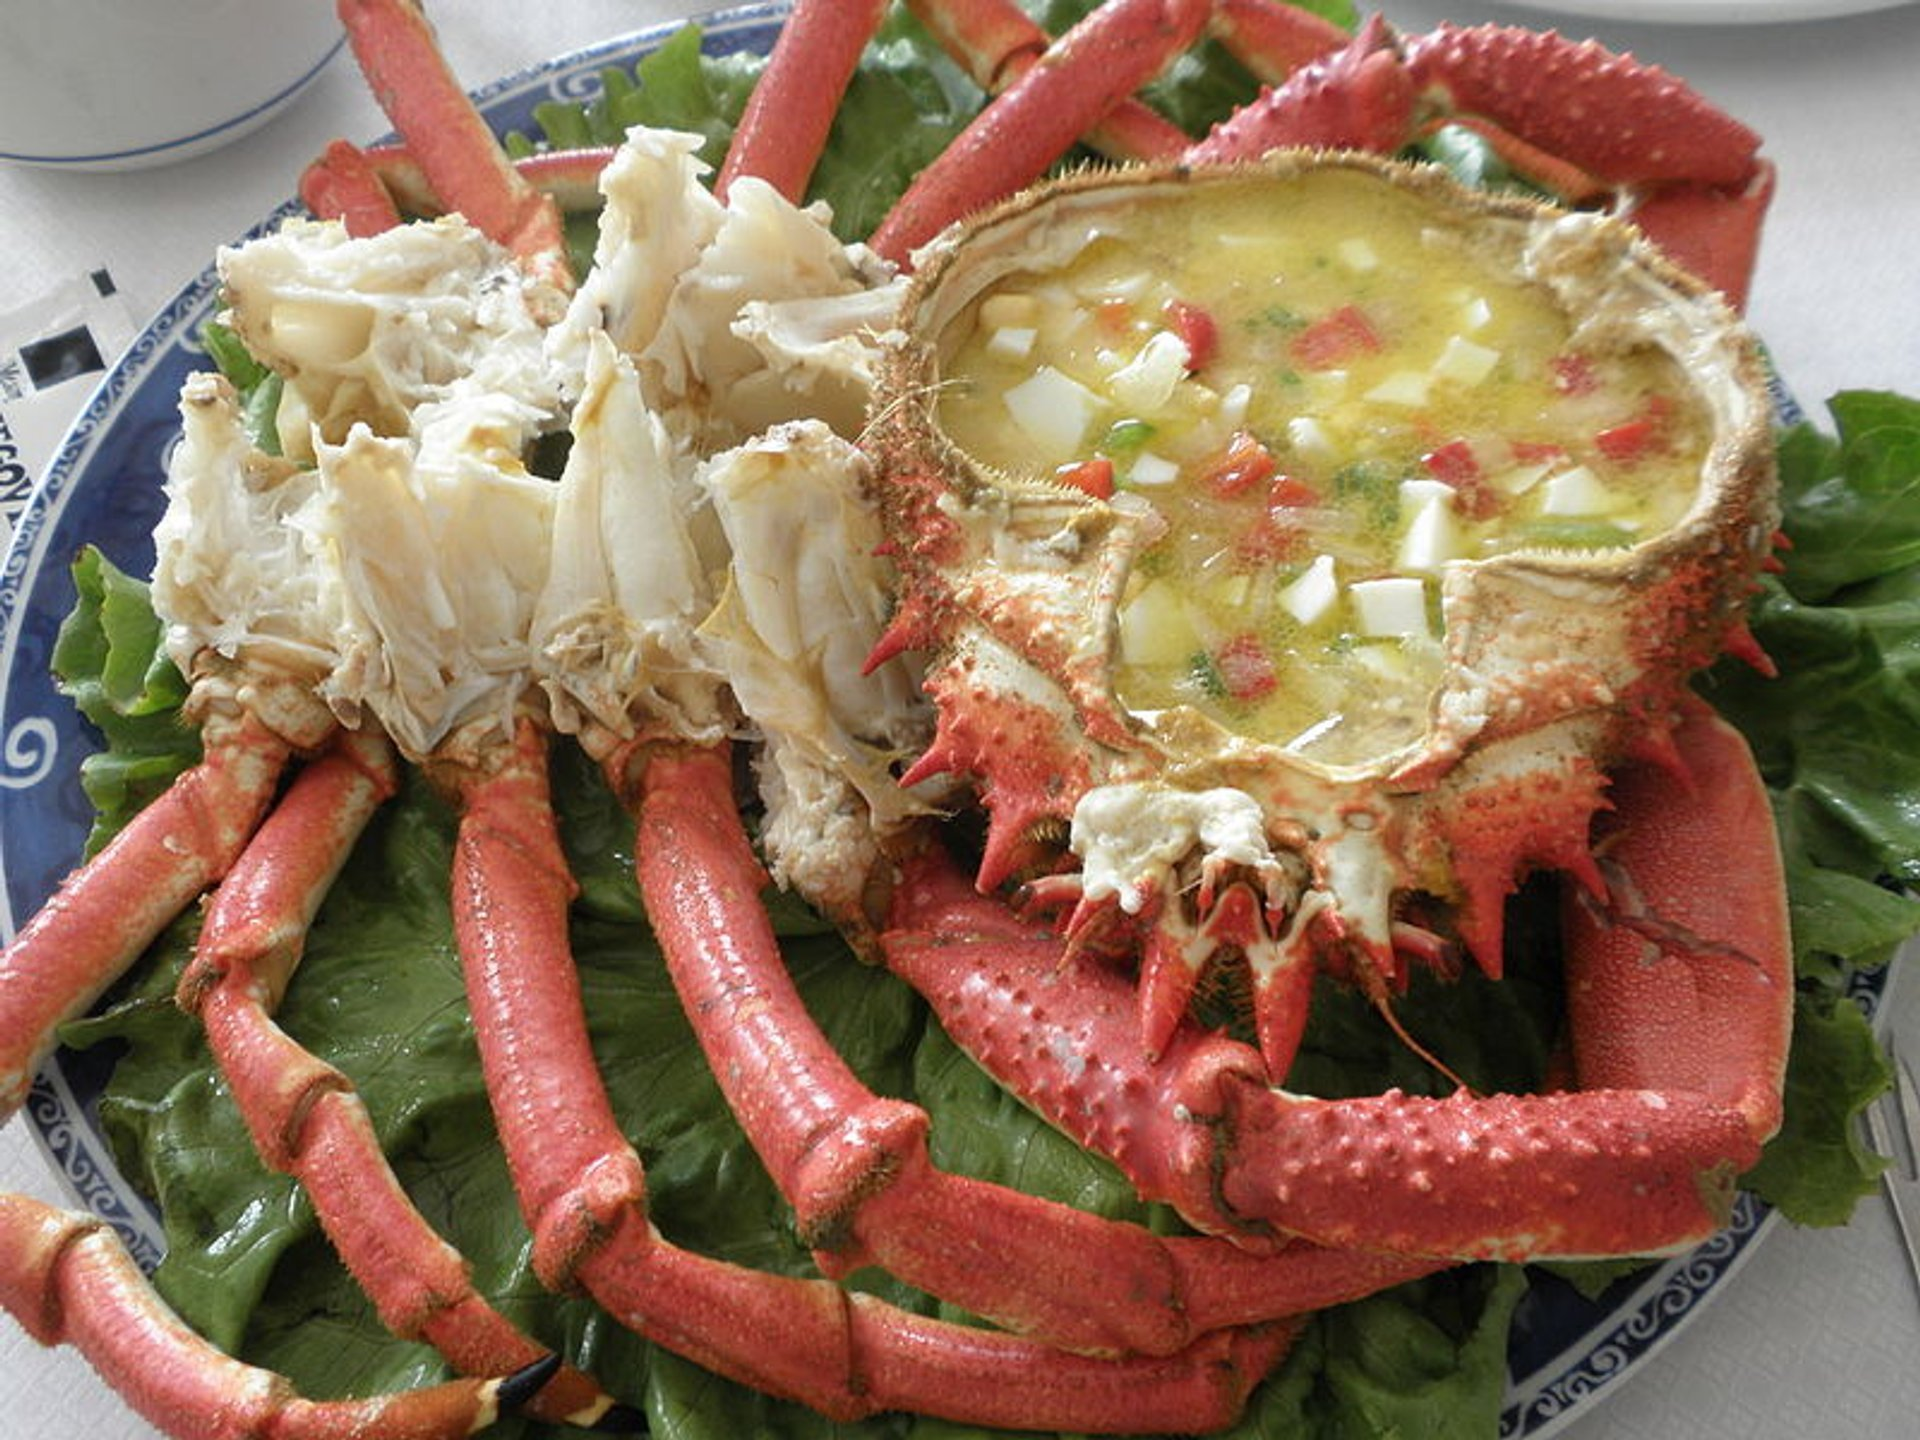 Best time for Centolla or King Crab in Chile 2019